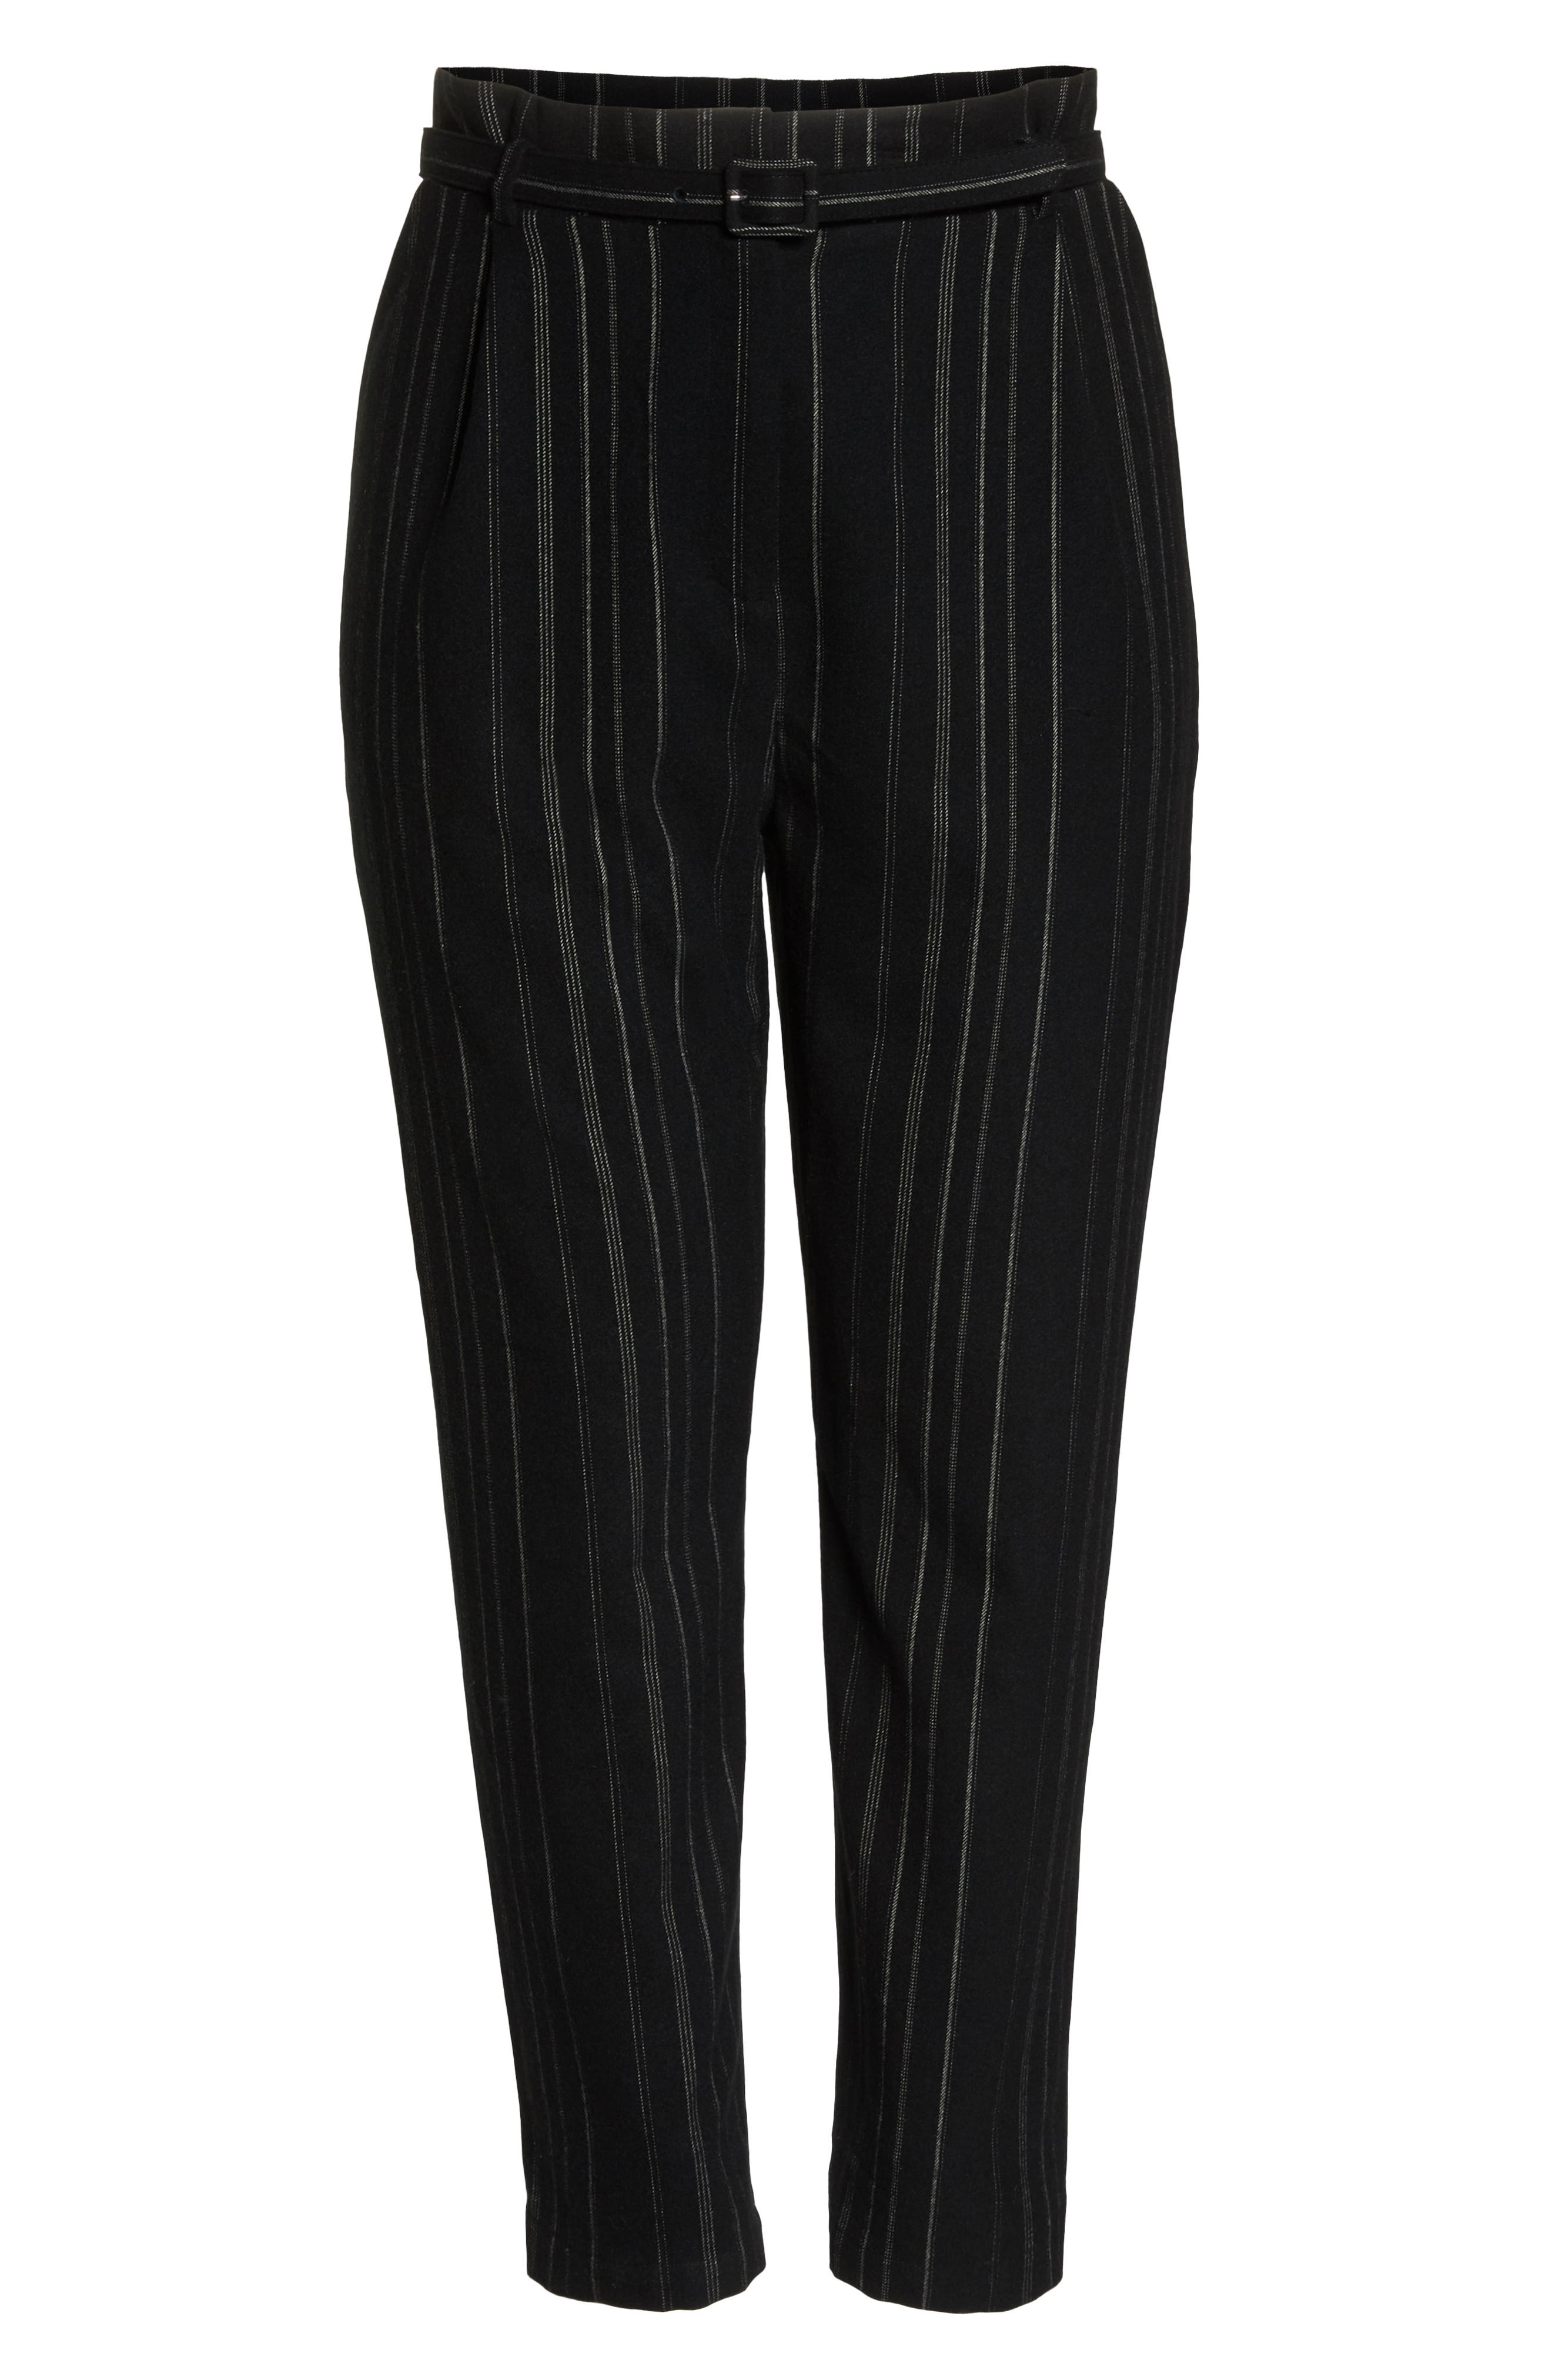 High Rise Belted Paperbag Pants,                             Alternate thumbnail 12, color,                             BLACK MIXED STRIPE